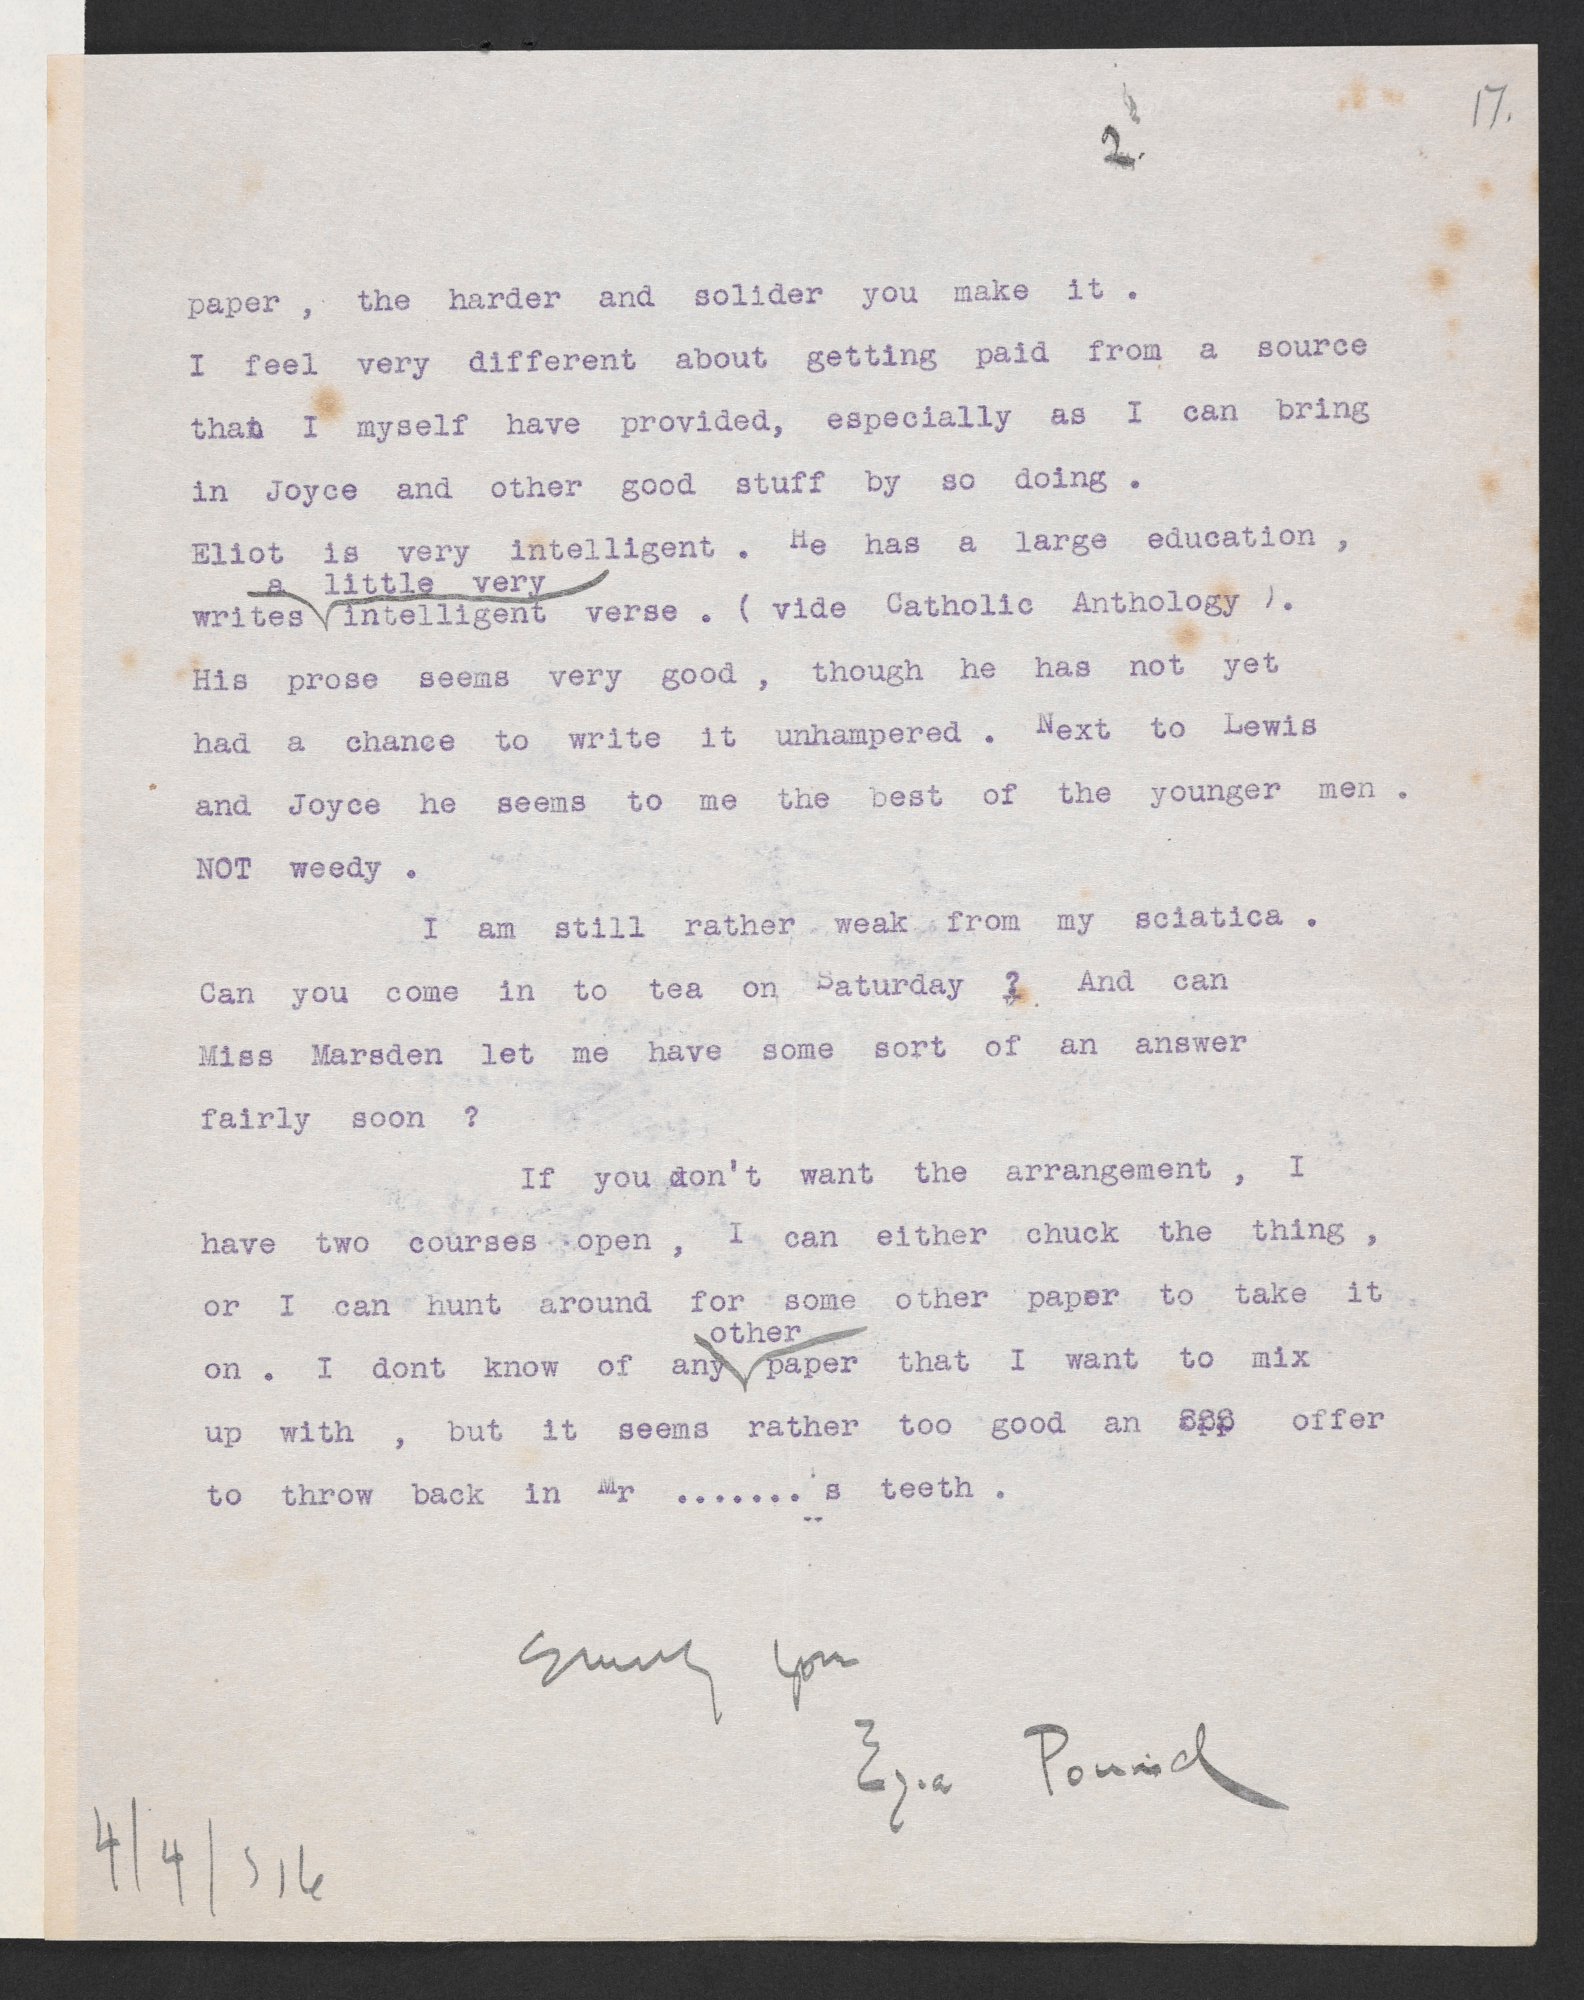 Manuscript drafts of A Portrait of the Artist as a Young Man and Ulysses by James Joyce